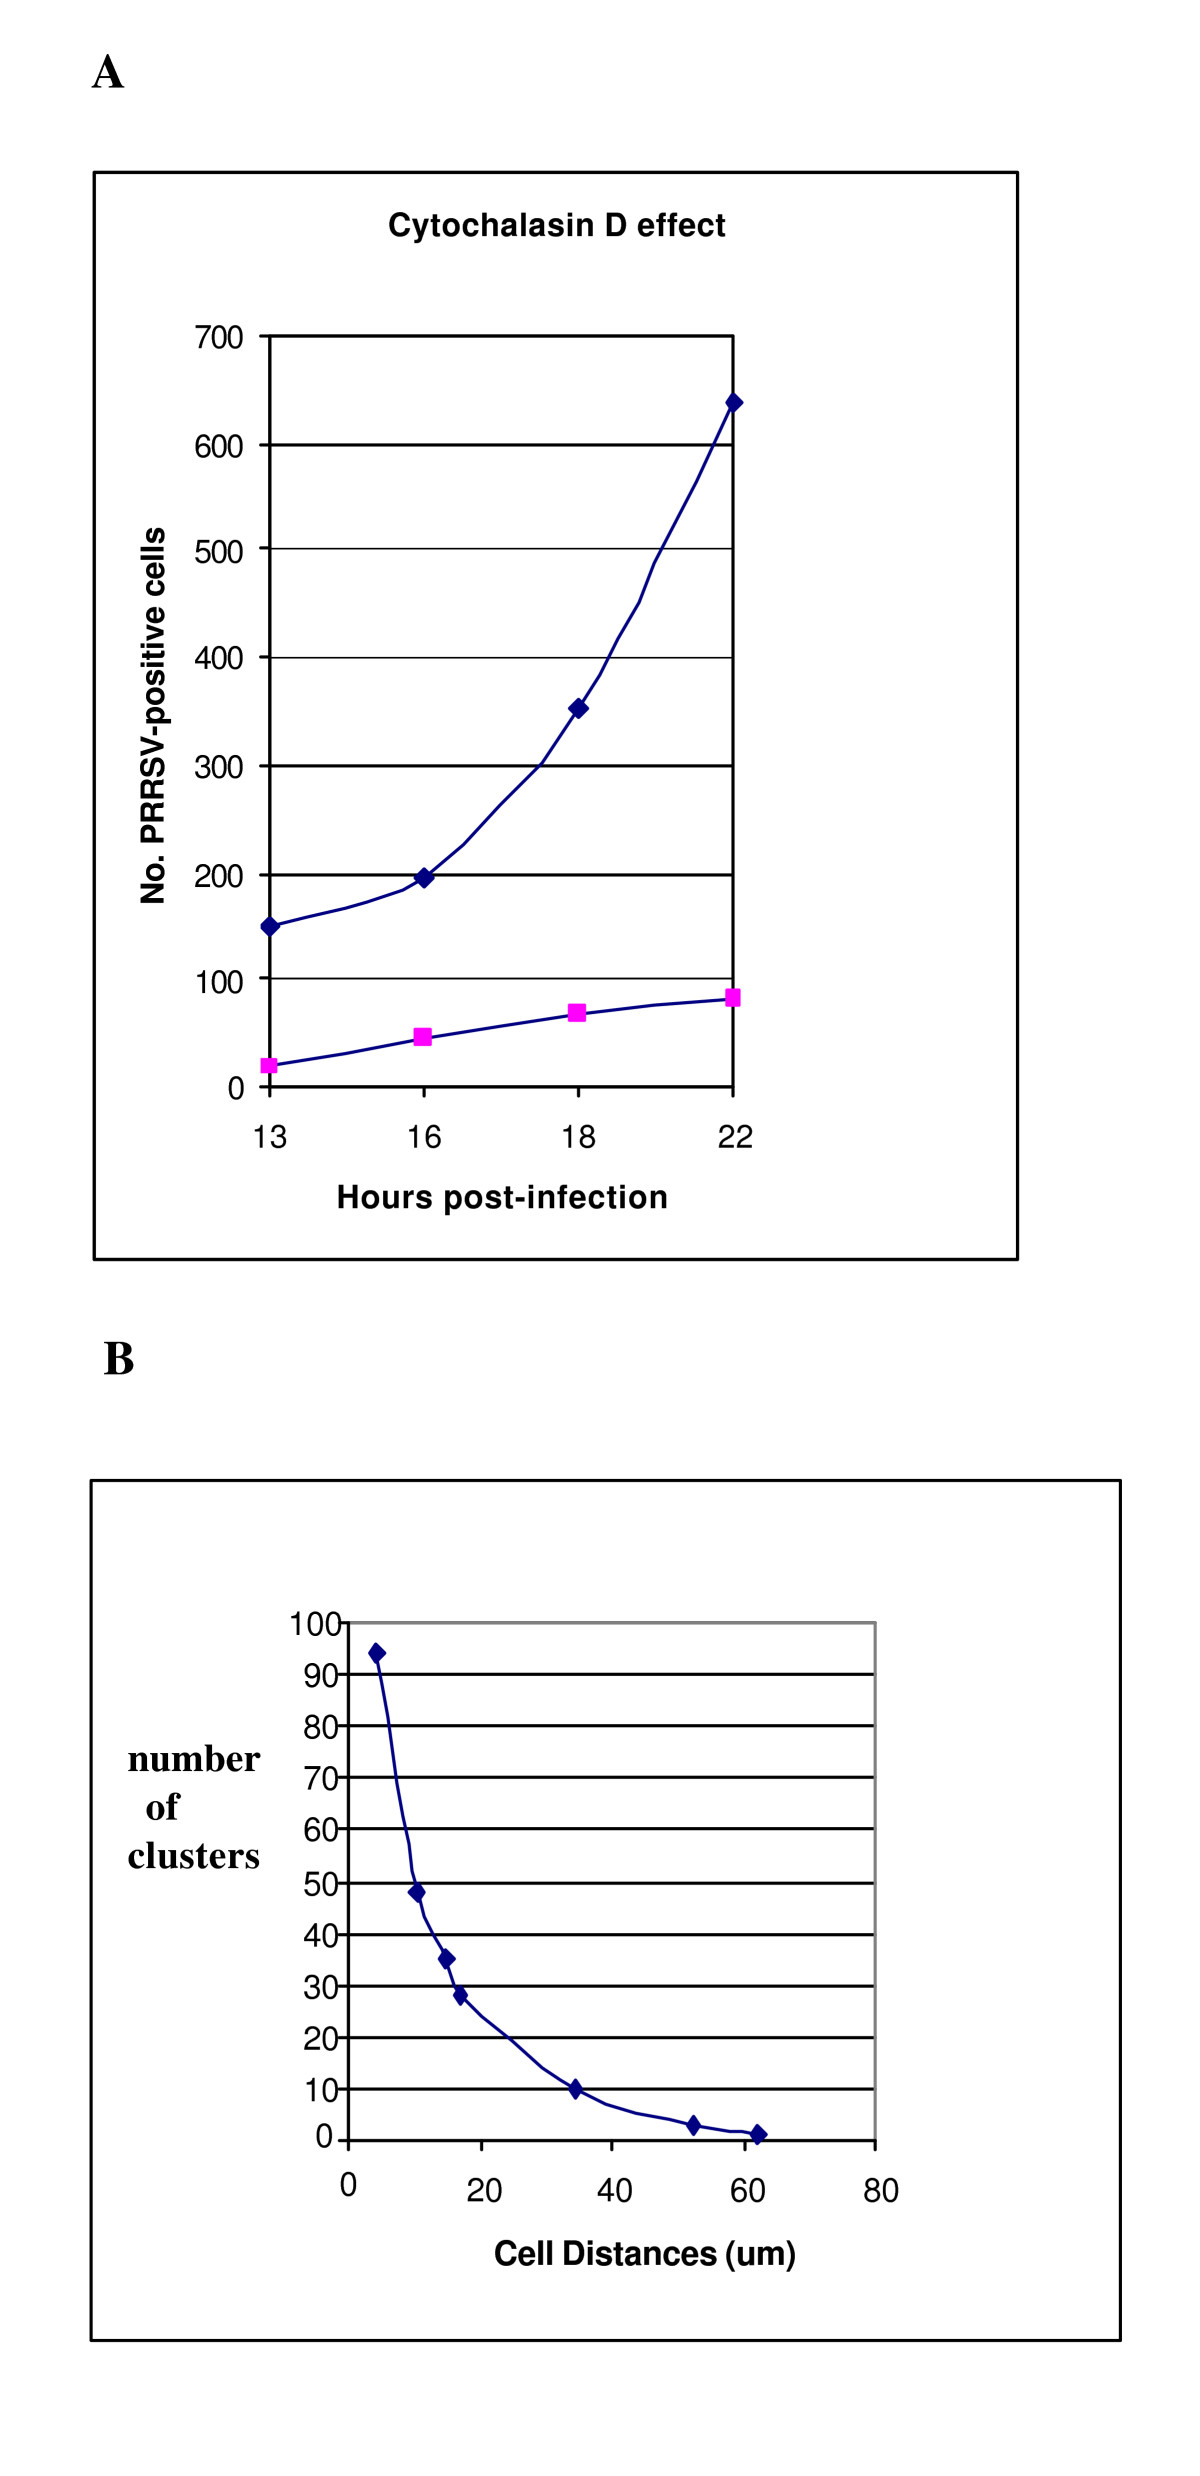 https://static-content.springer.com/image/art%3A10.1186%2F1743-422X-3-90/MediaObjects/12985_2006_Article_197_Fig8_HTML.jpg